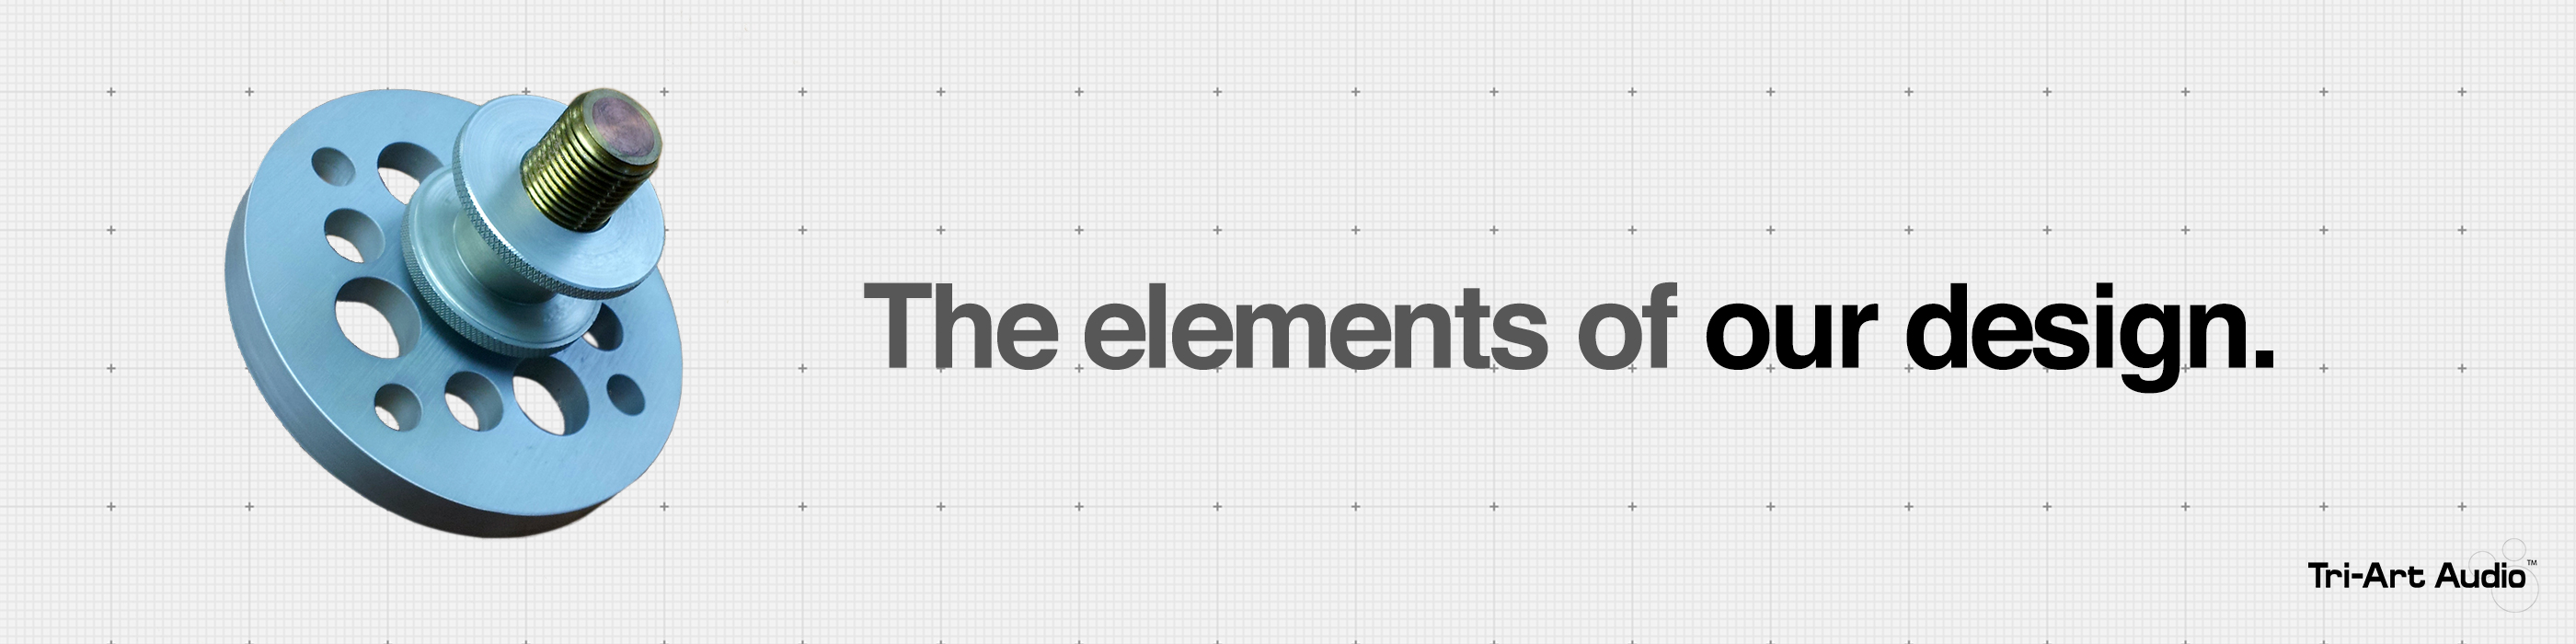 Slider – The elements of our design